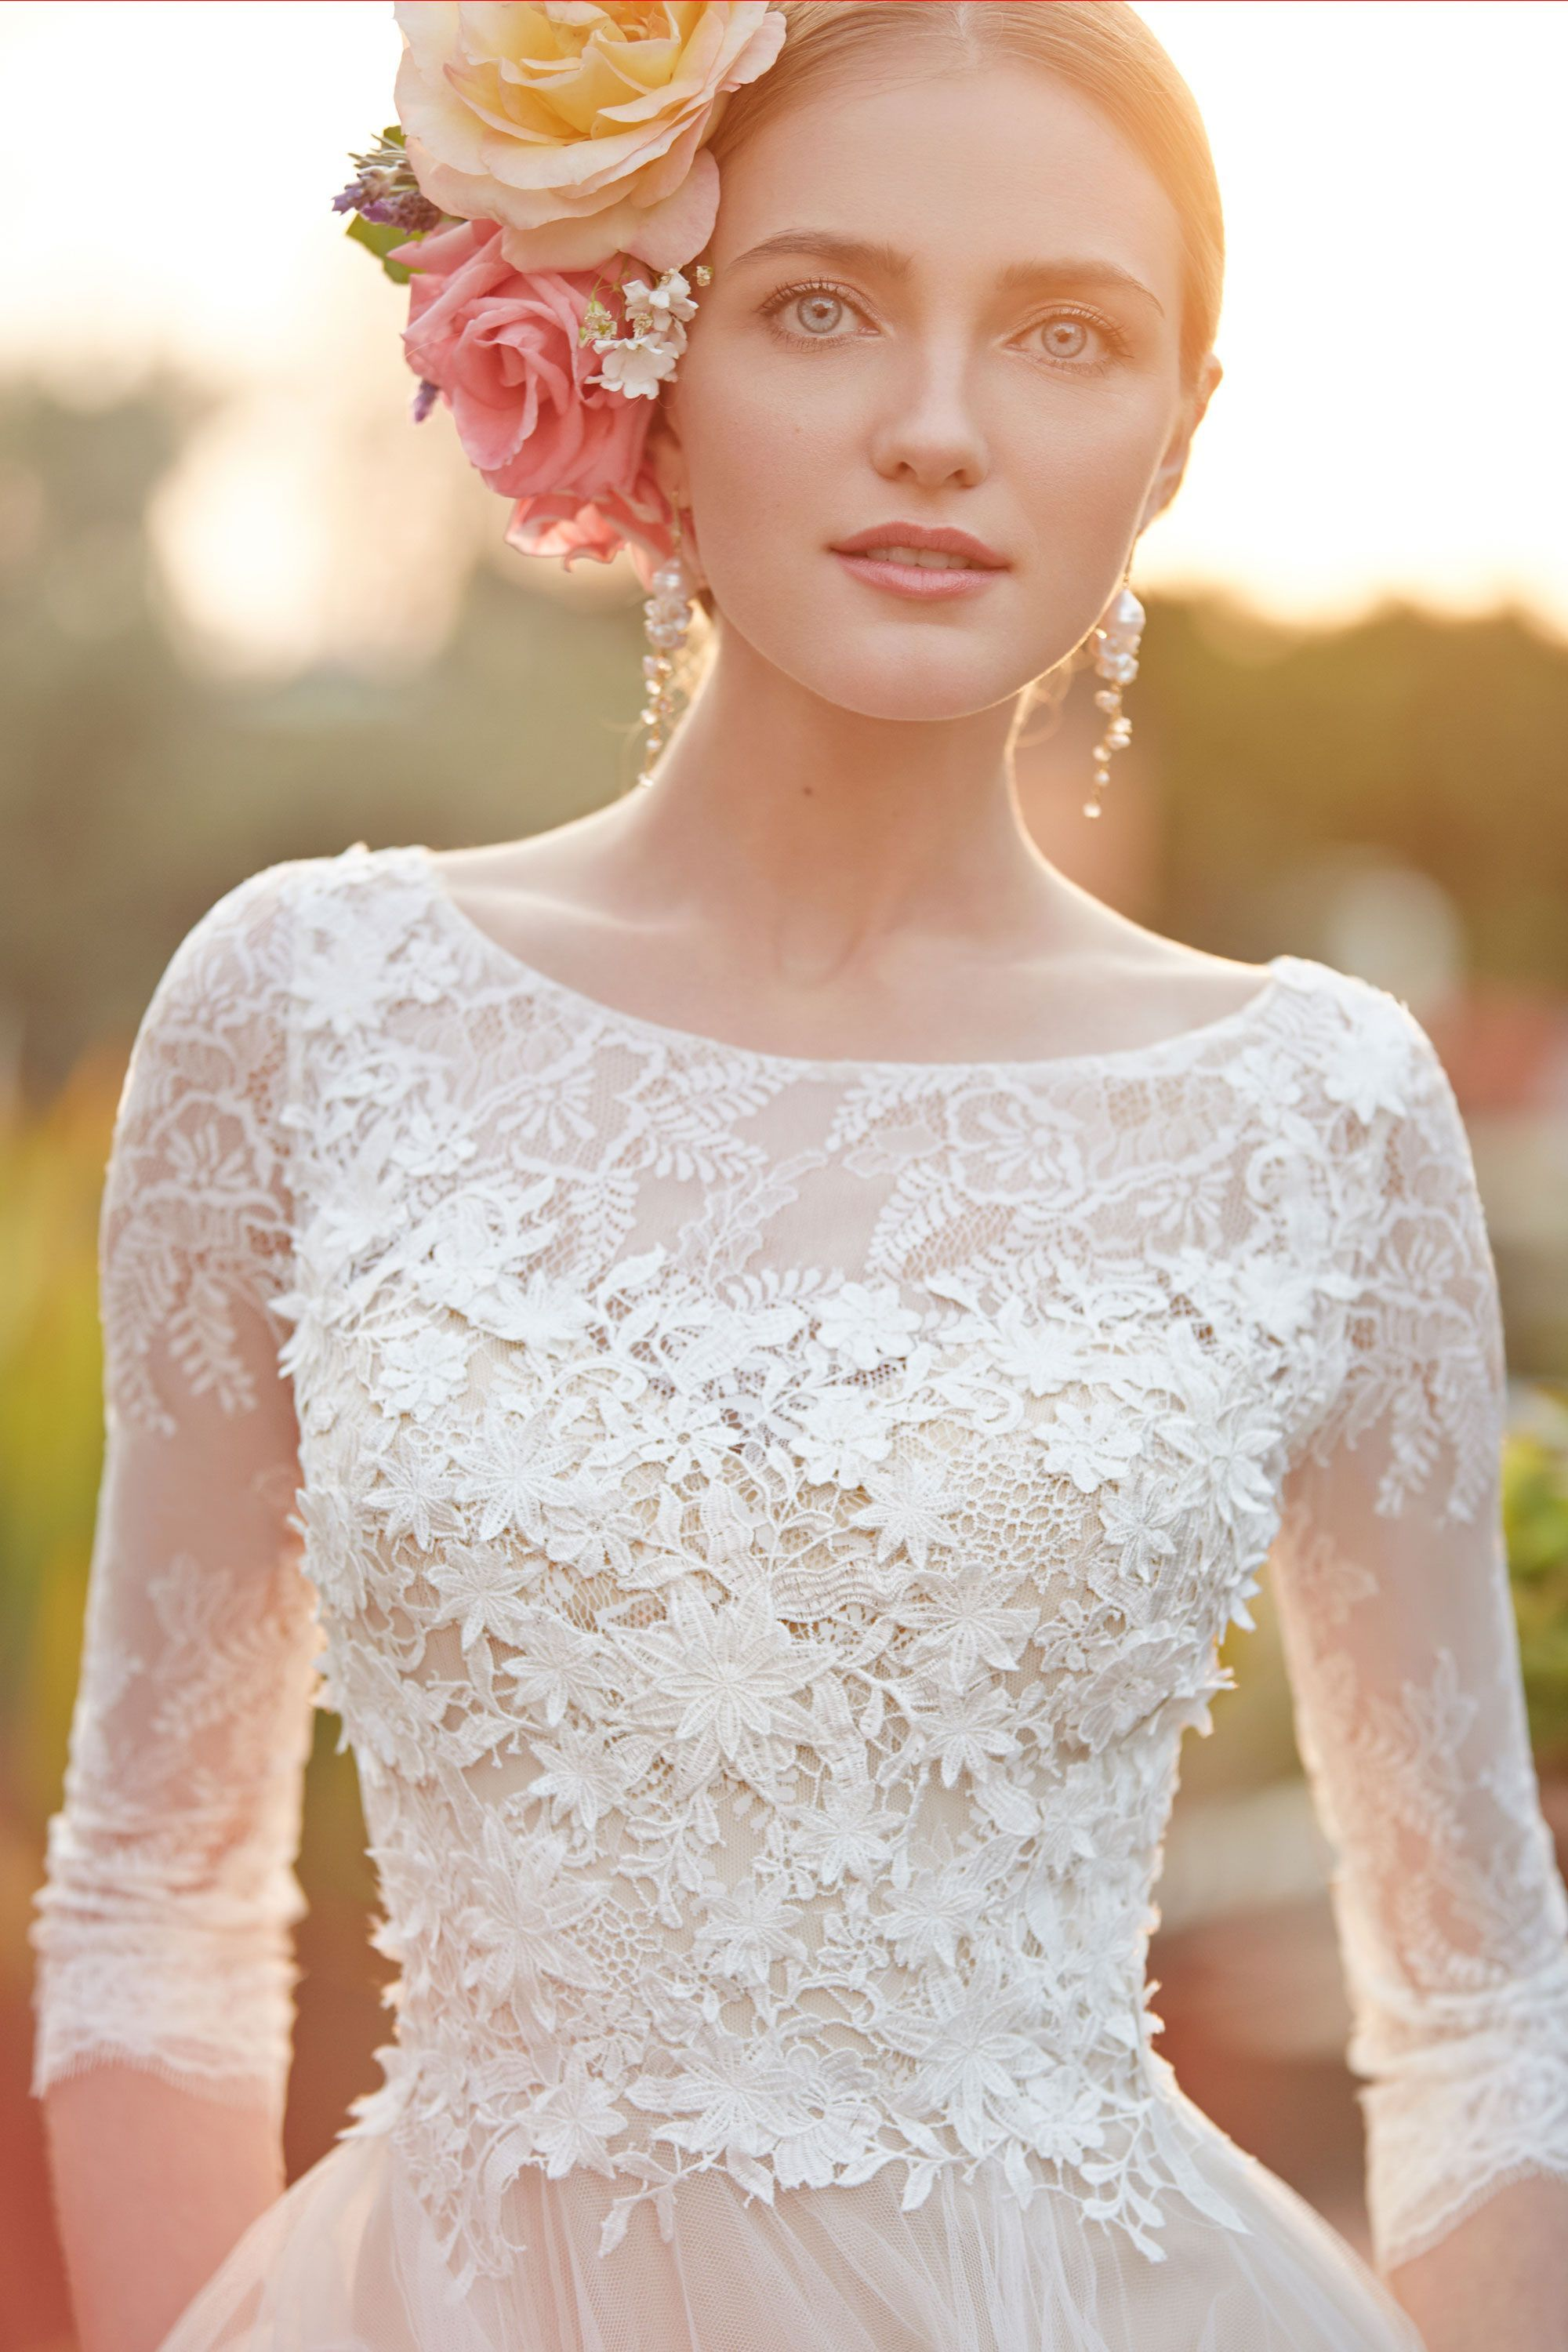 Yours truly floral headpiece wedding dress and weddings